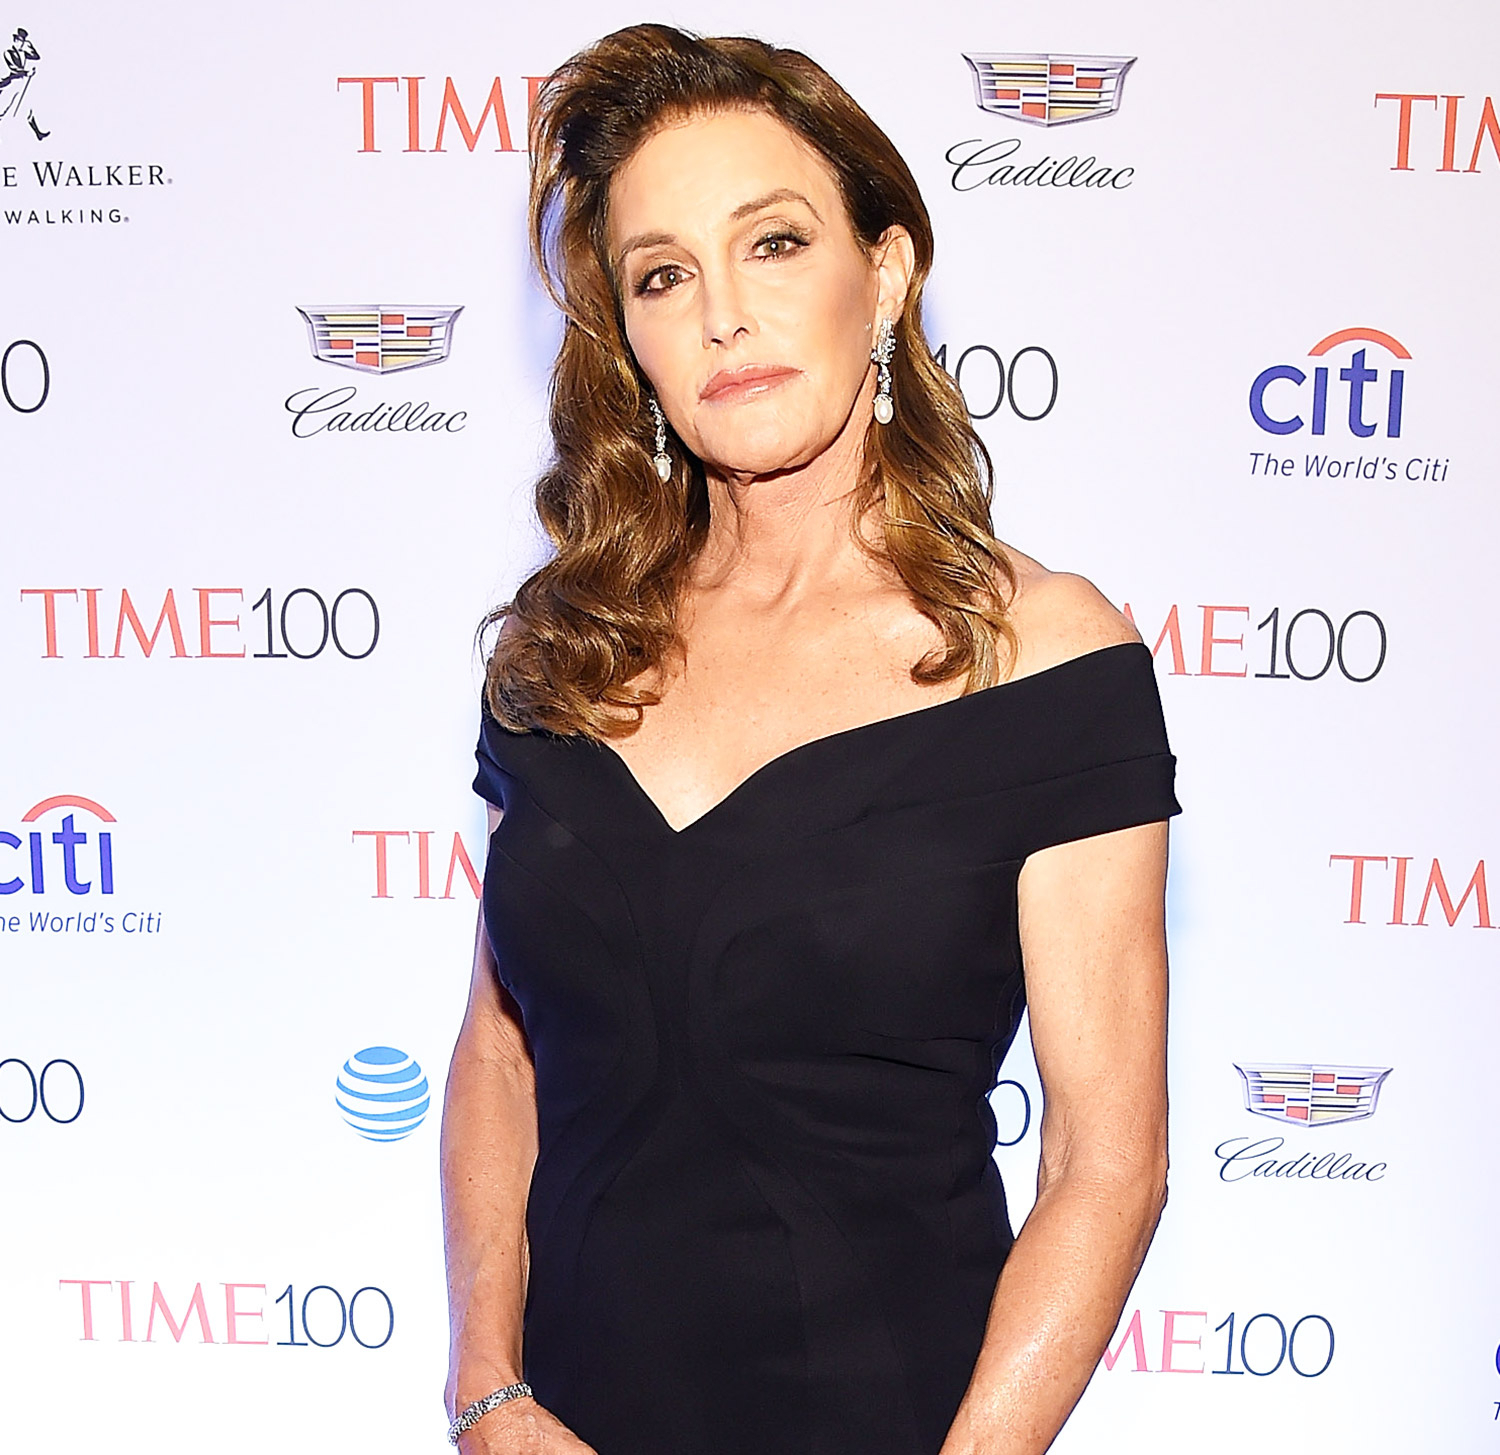 Caitlyn Jenner Covers Sports Illustrated, Marking 40 Years Since She Won Olympic Gold Caitlyn Jenner Covers Sports Illustrated, Marking 40 Years Since She Won Olympic Gold new foto